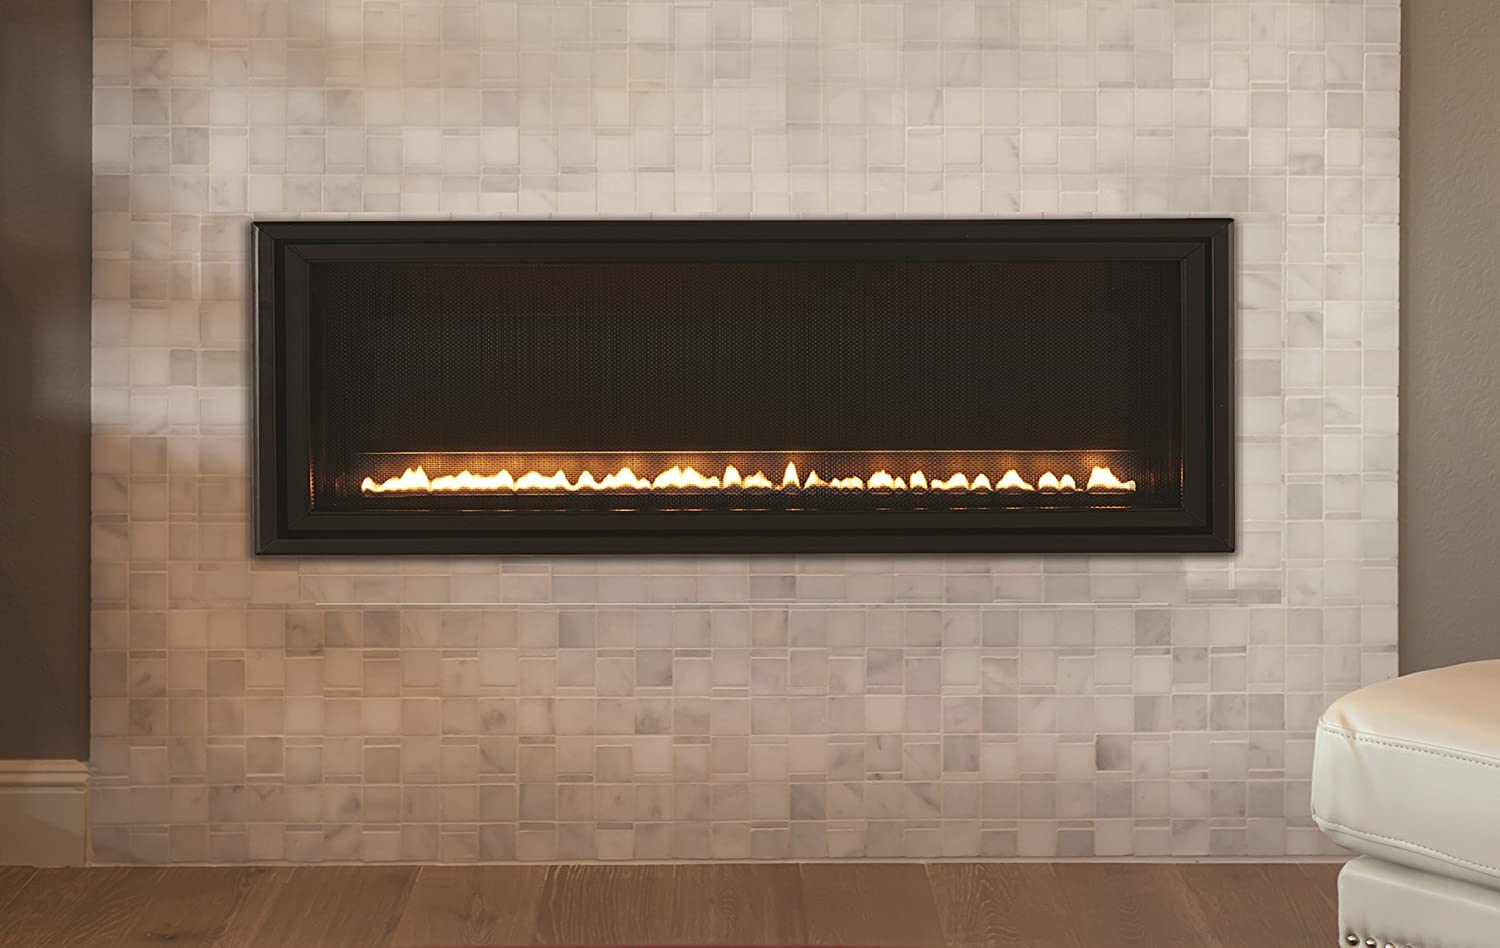 Design Linear Fireplace amazon com american hearth boulevard 48 linear vent free fireplace home kitchen